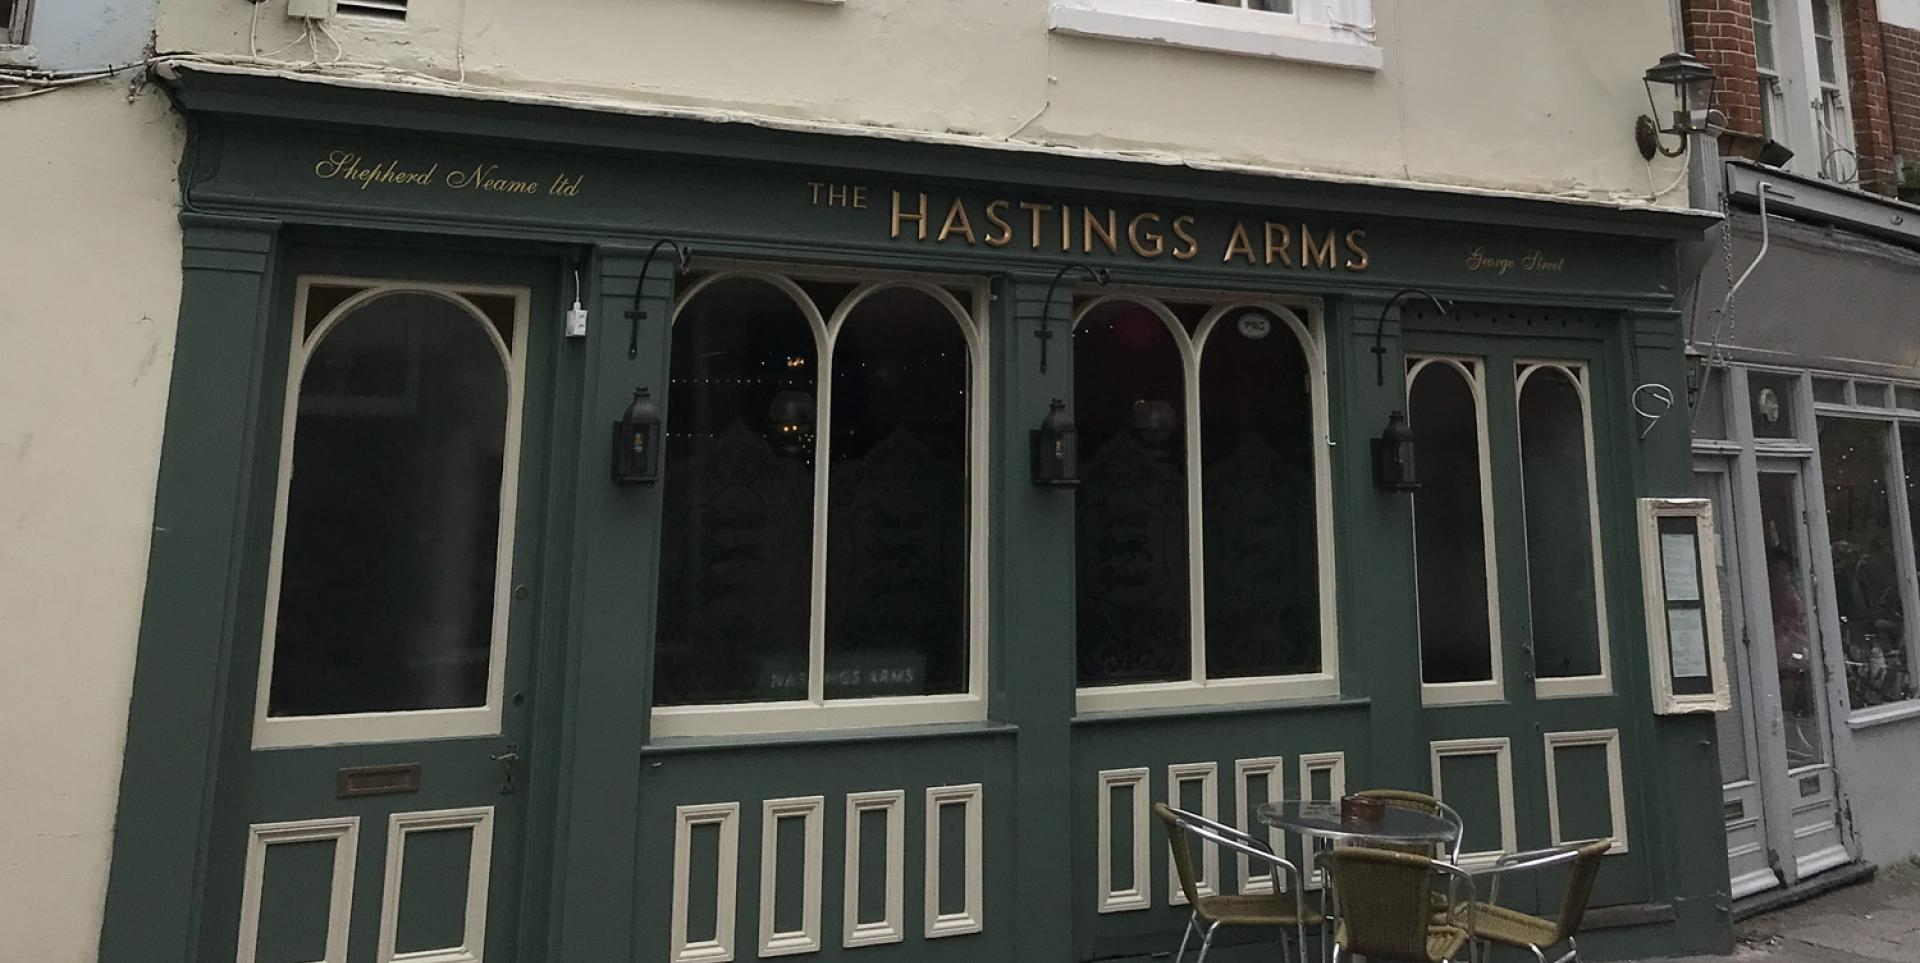 Hastings Arms, Hastings